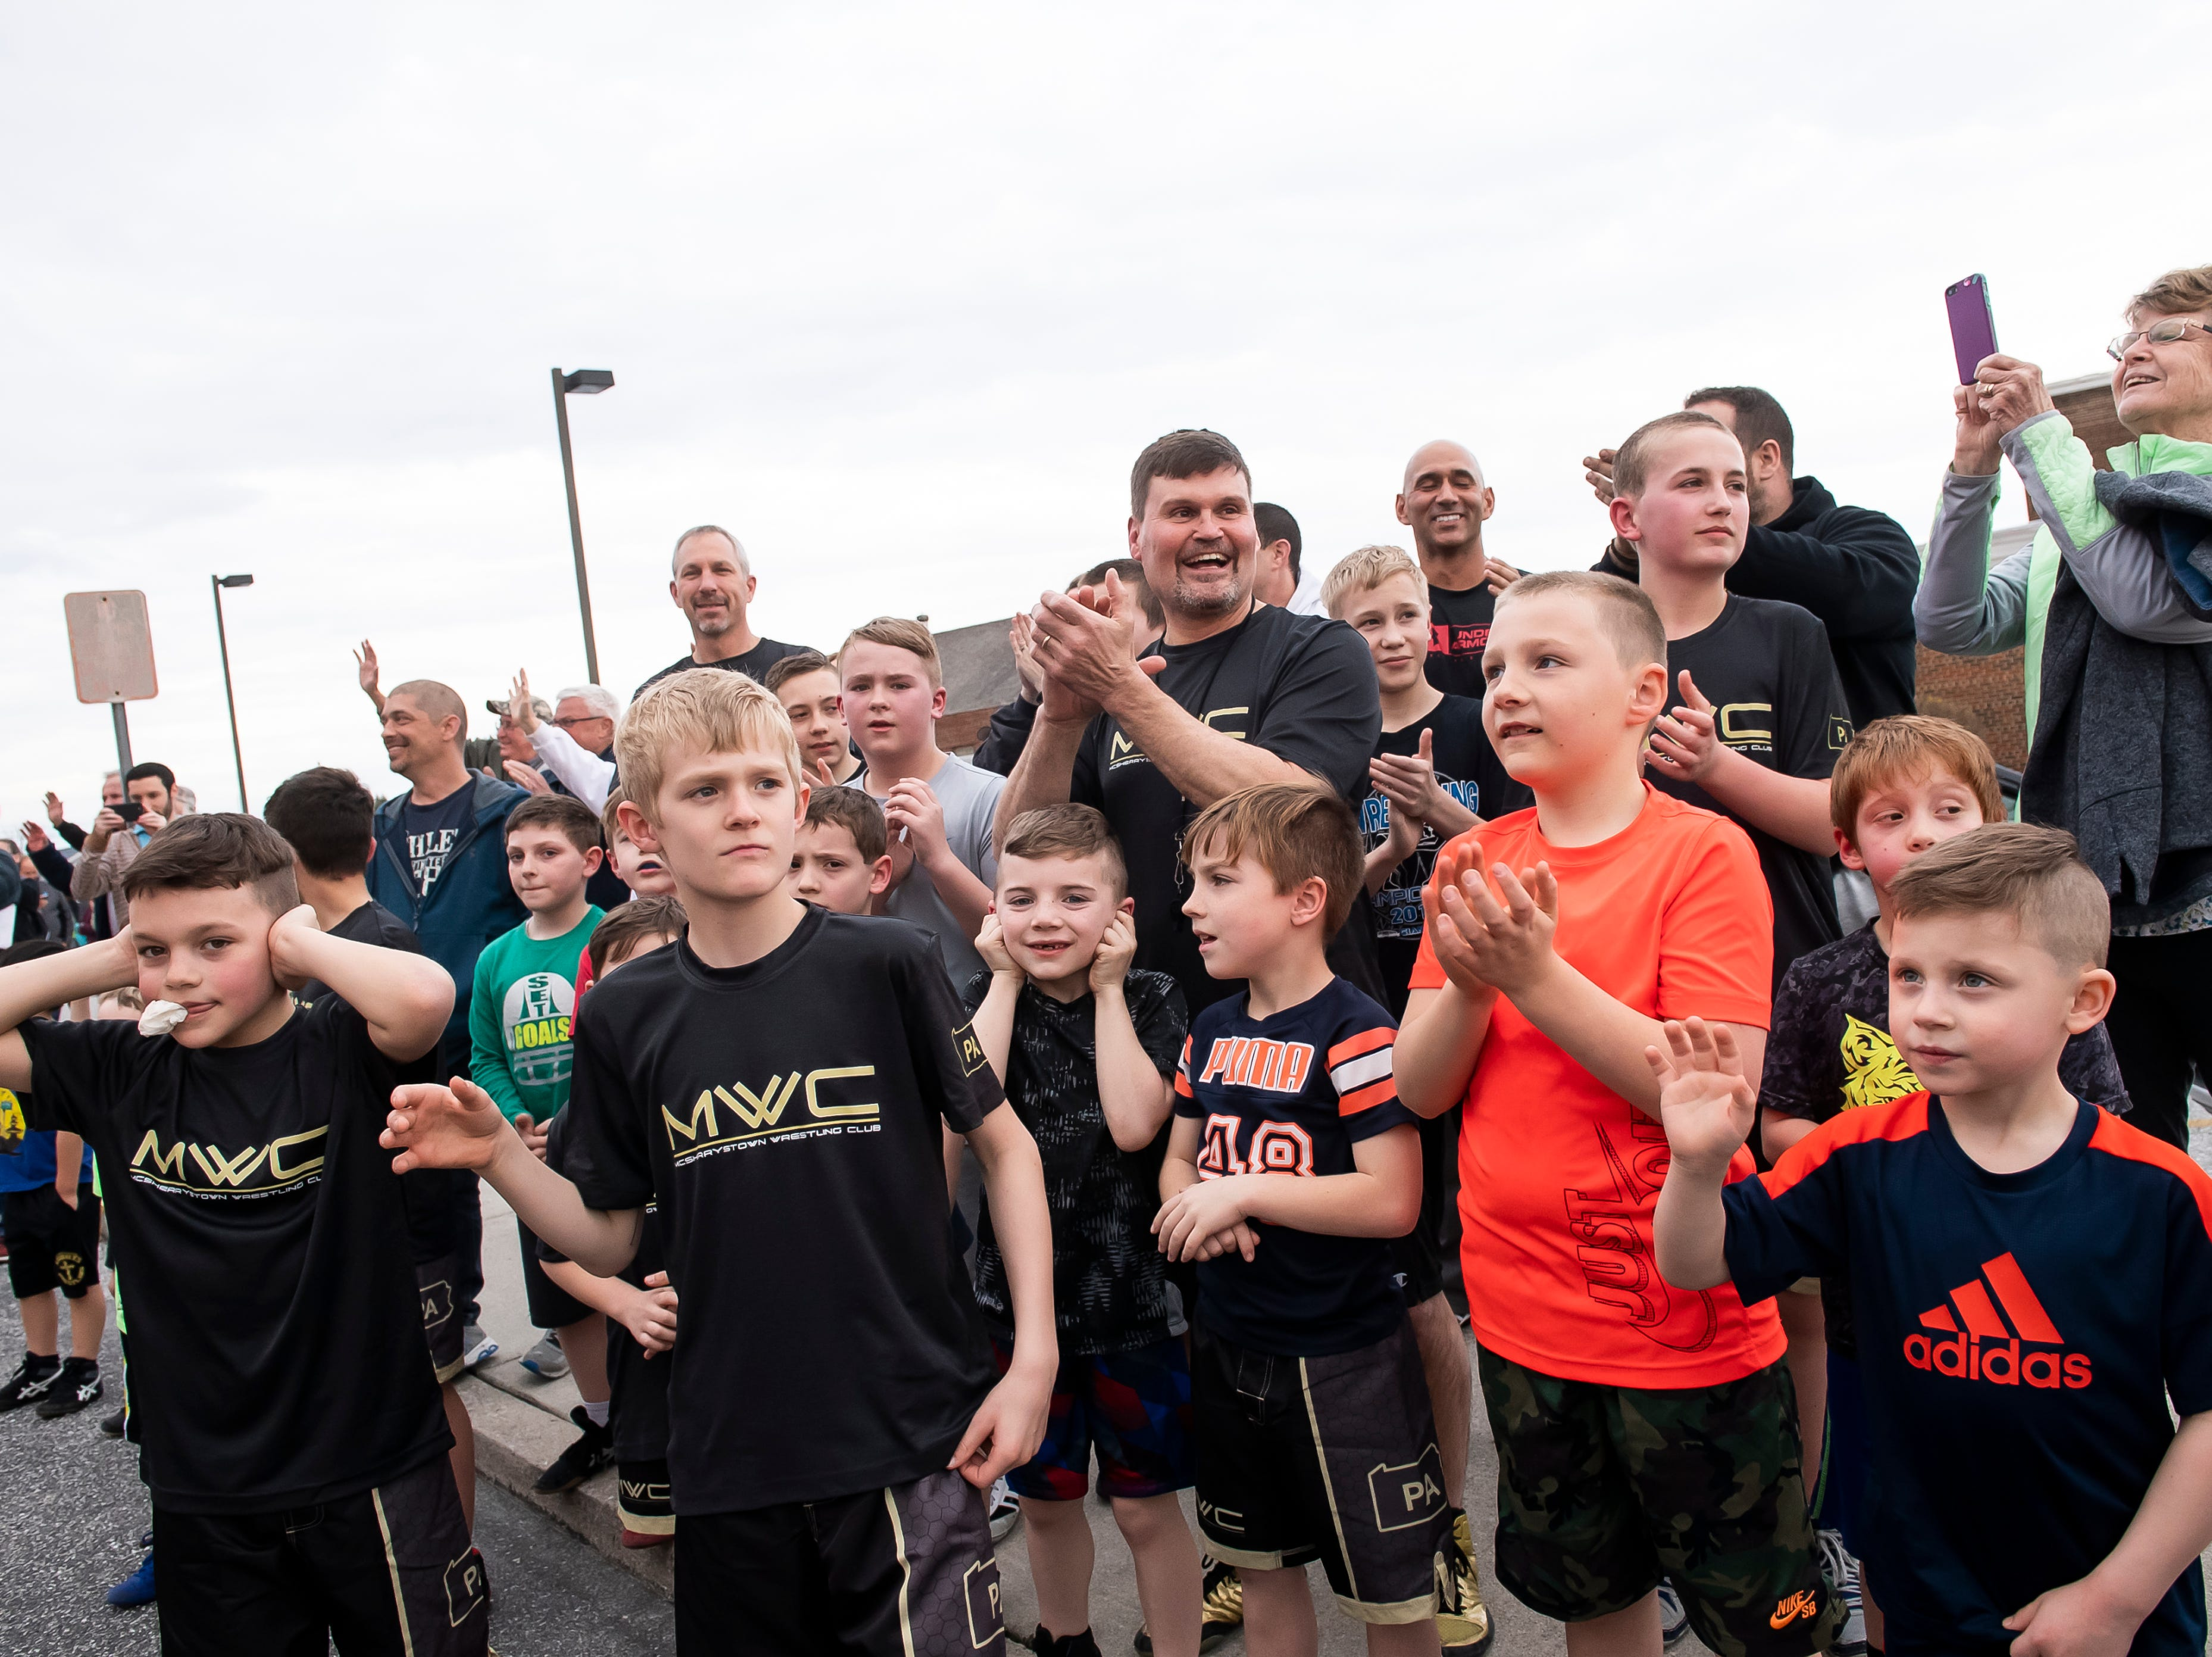 Delone Catholic fans young and old cheer for the Squirettes during a parade in McSherrystown celebrating their PIAA championship on Thursday, March 28, 2019.